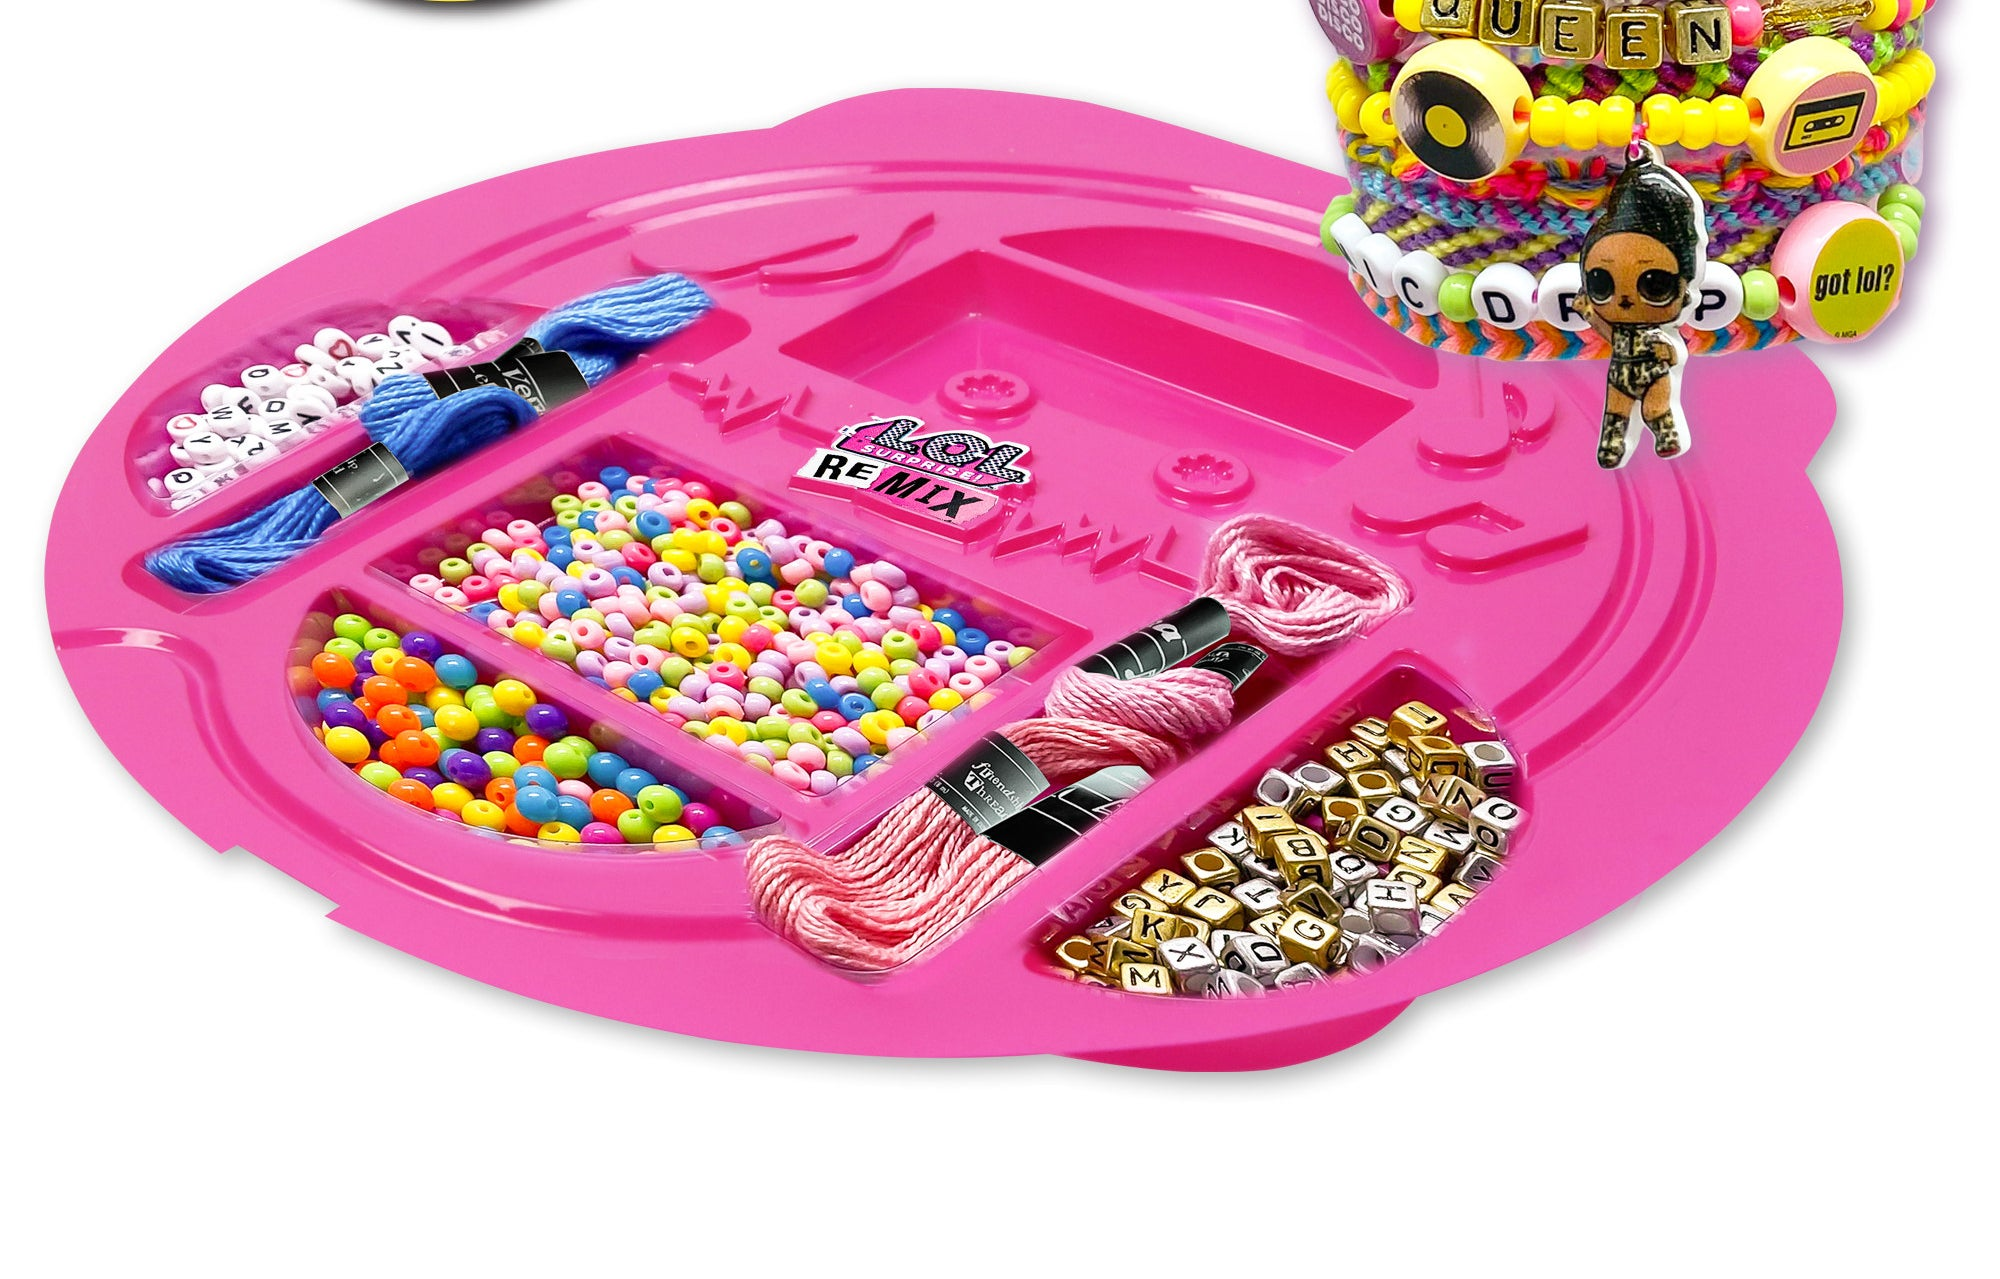 Pink tray with various beads, thread and jewelry making supplies